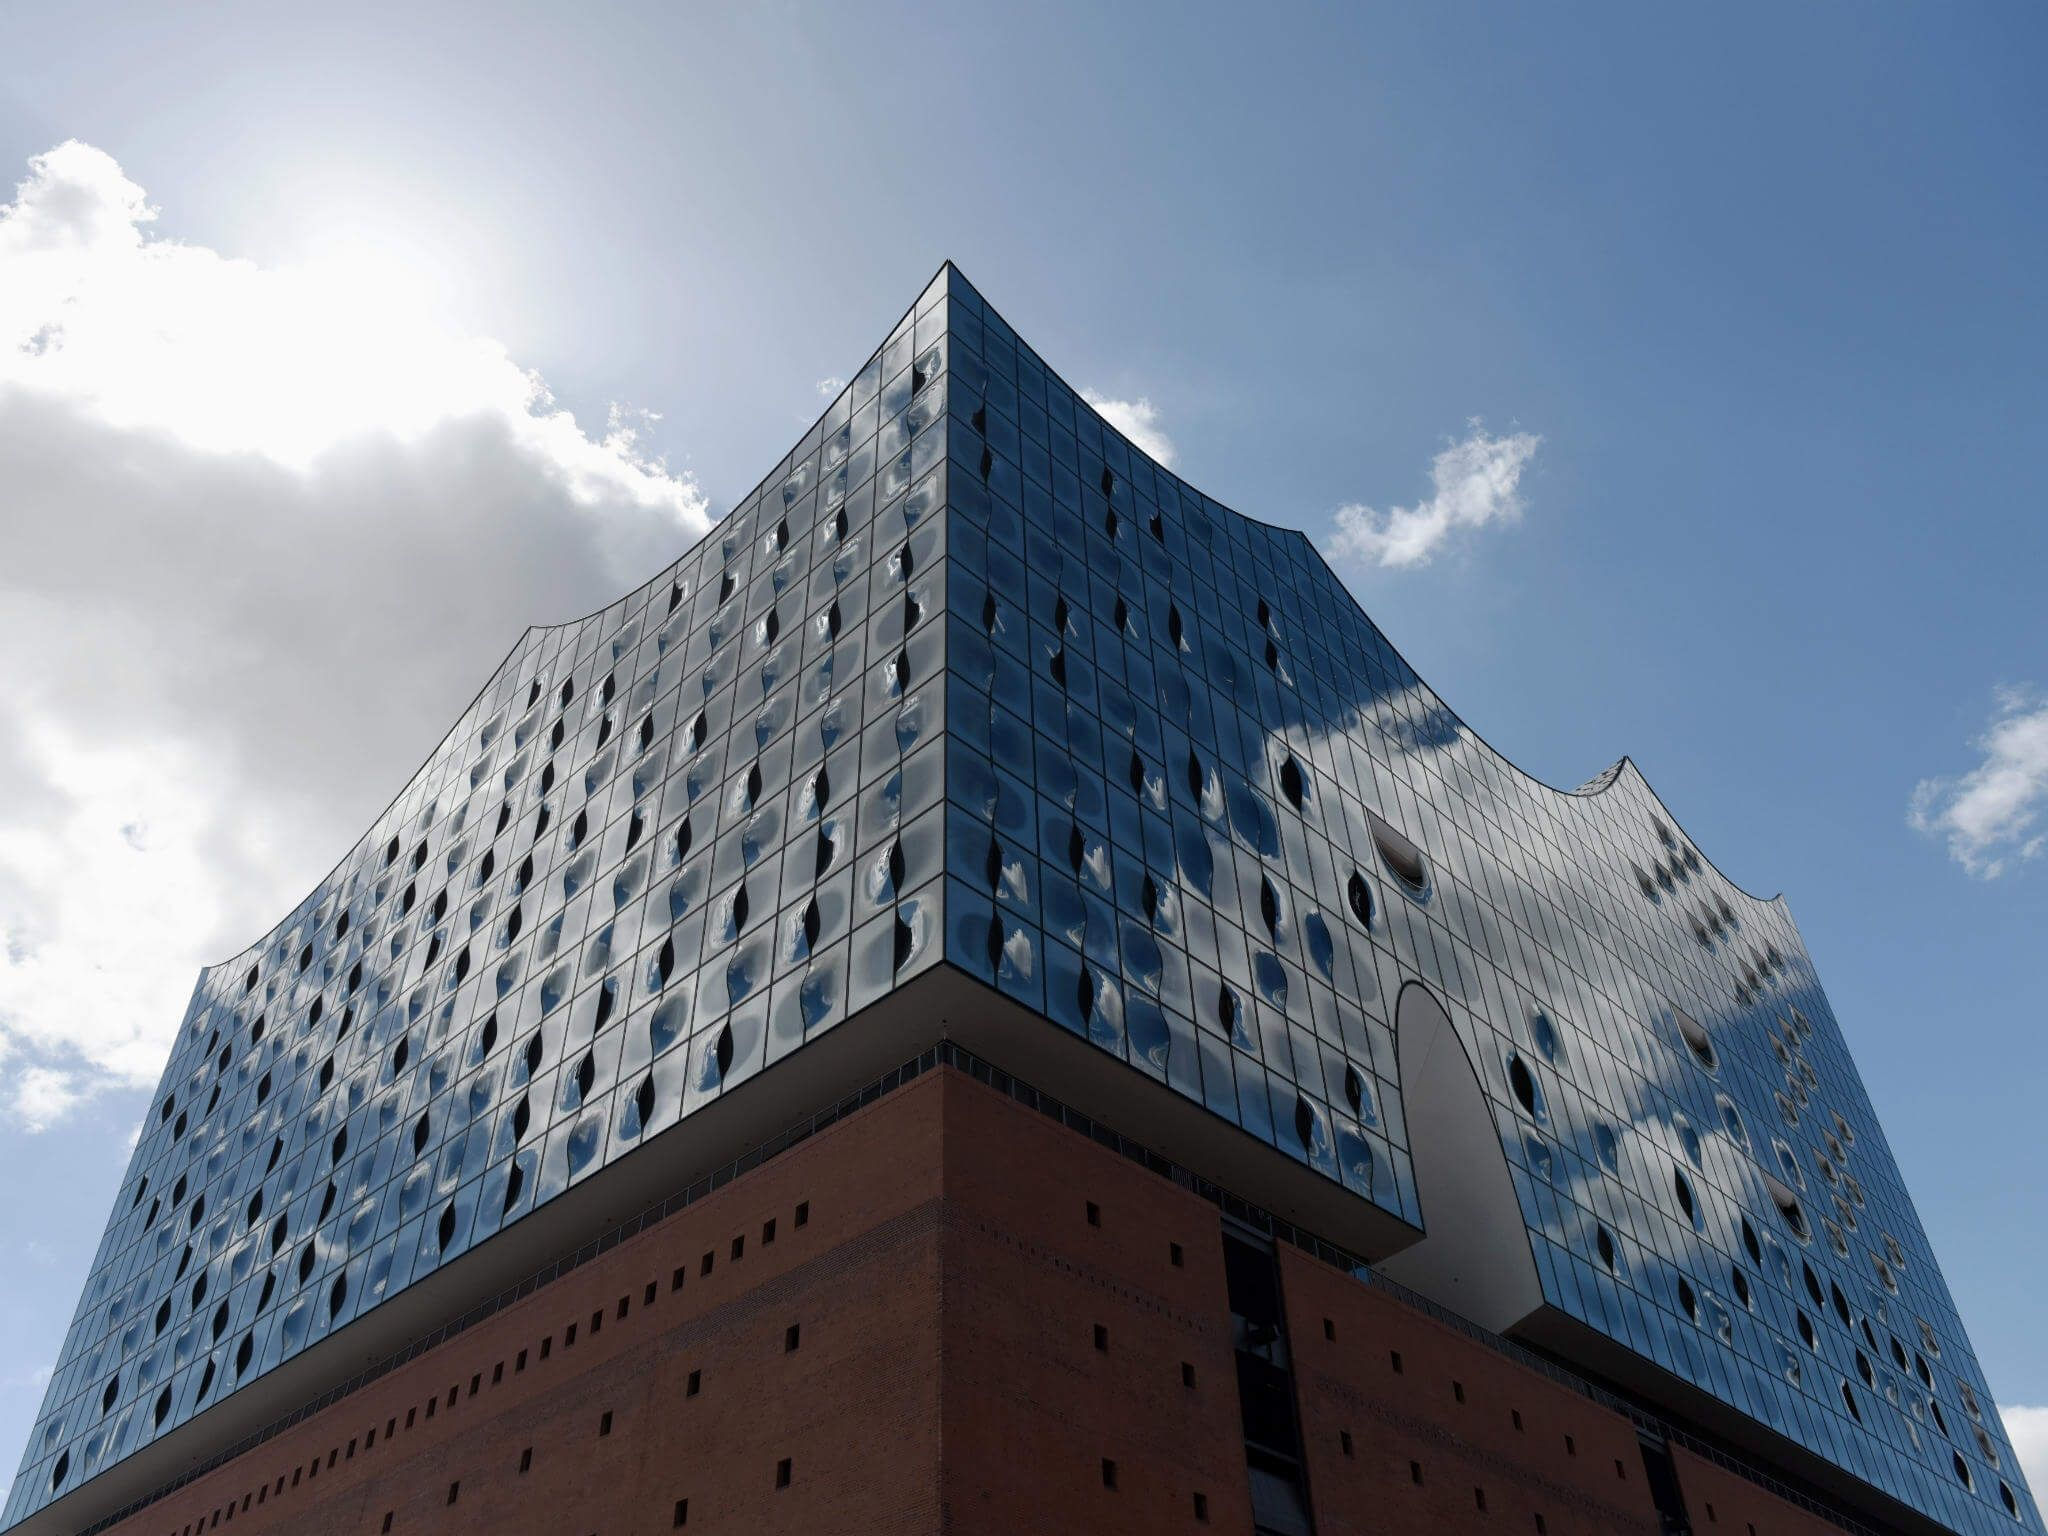 Westin Hotel Hamburg, in the Elbphilharmonie